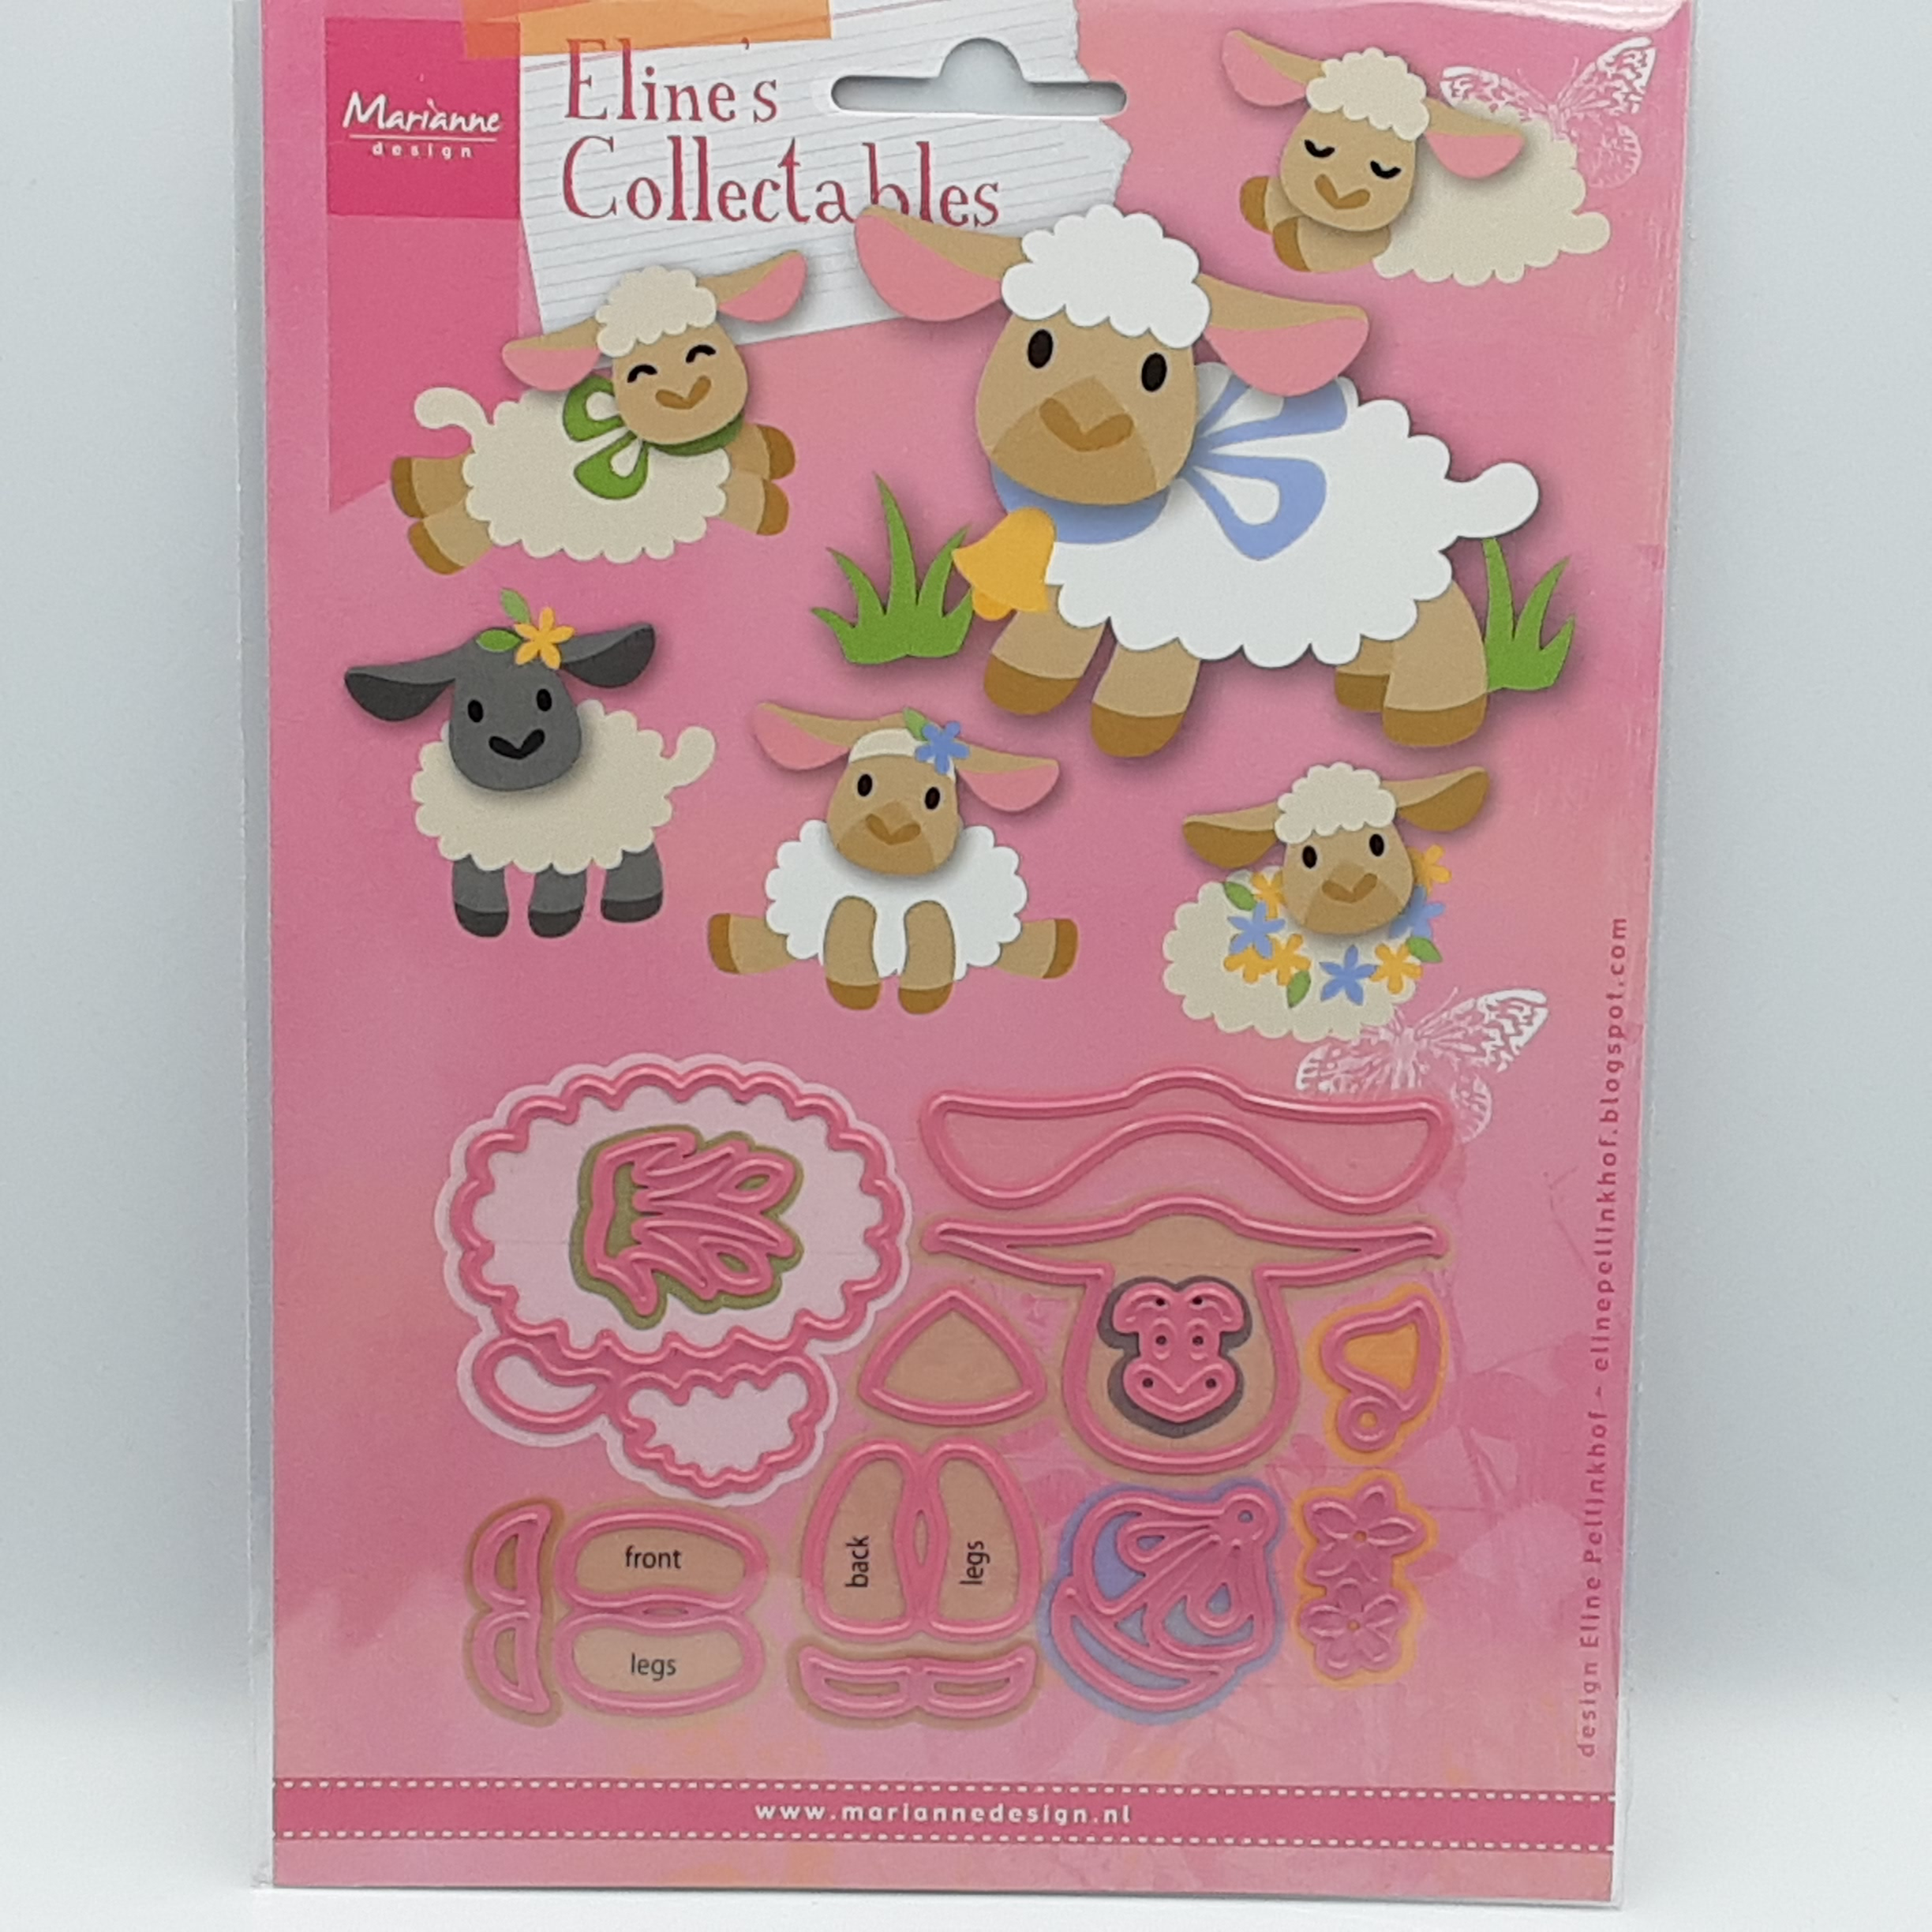 Eline's lamb collectables